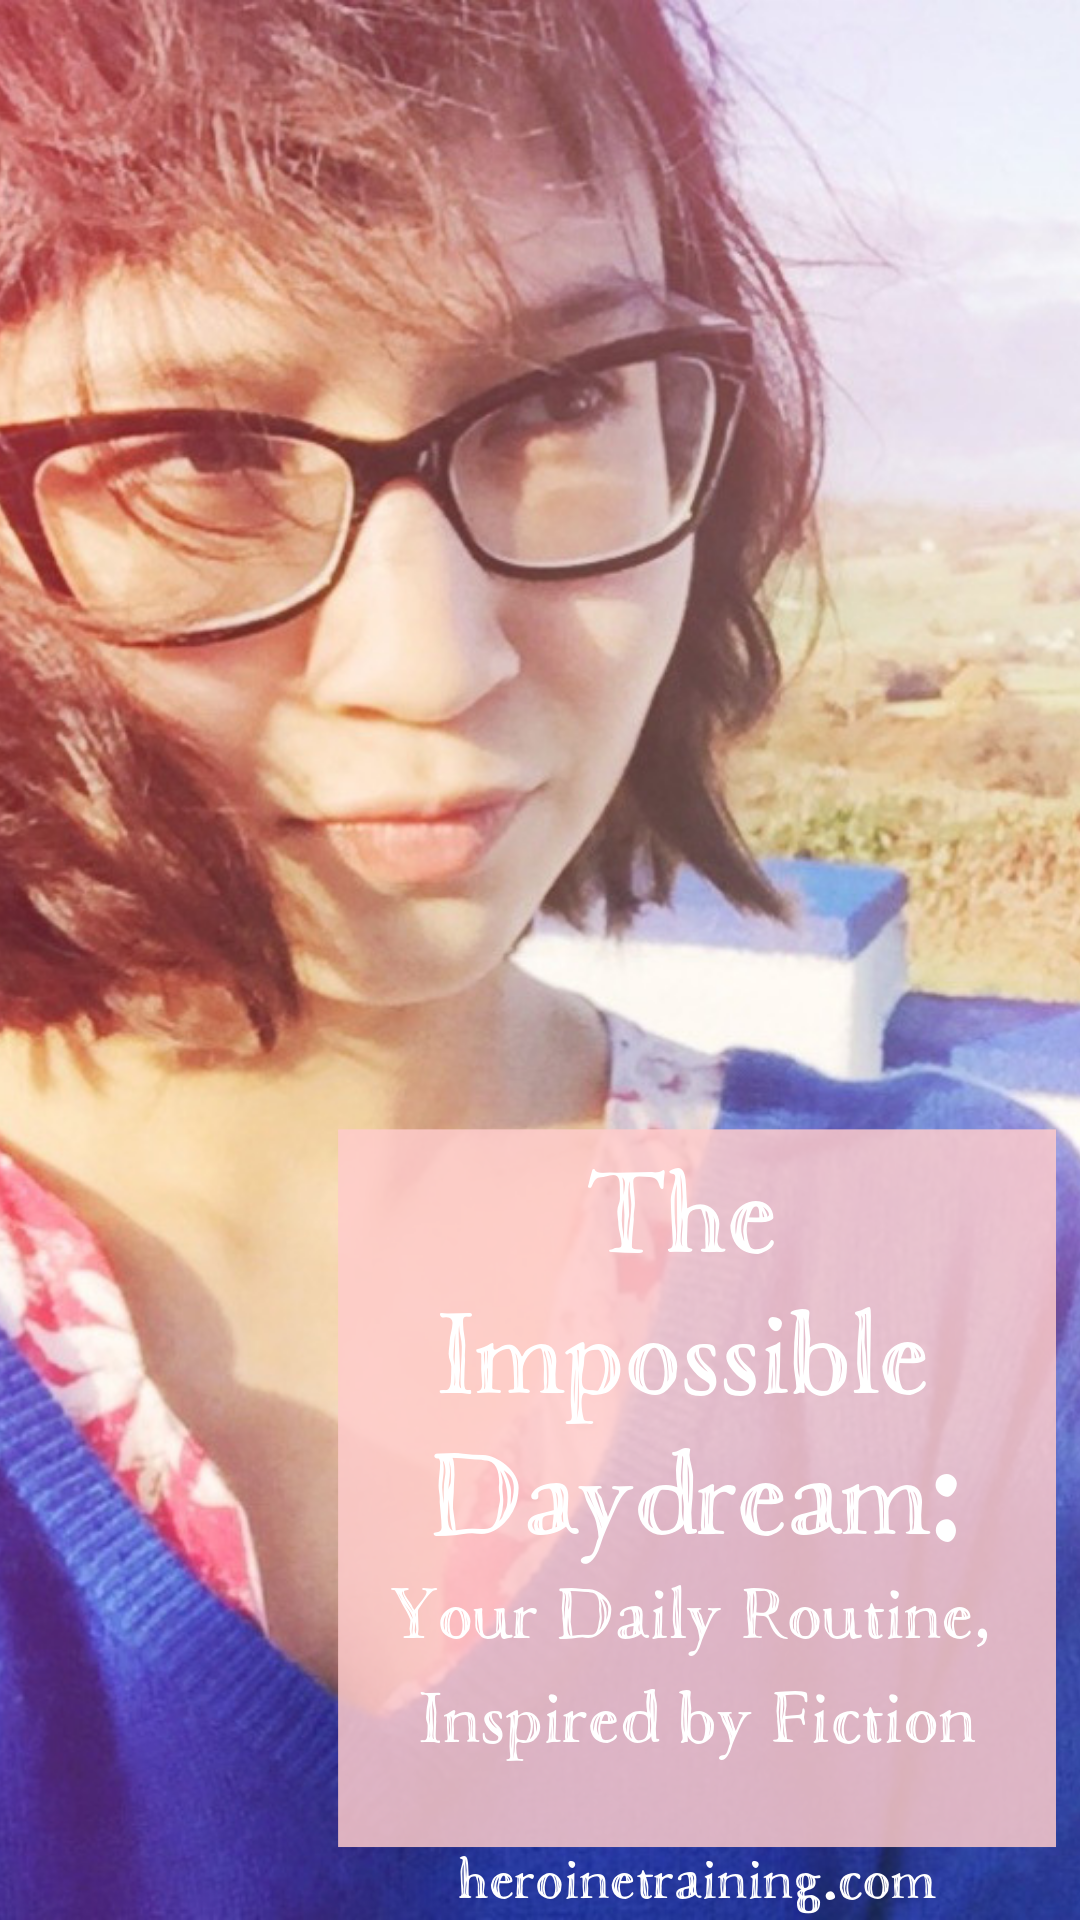 The Impossible Daydream: Your Daily Routine, Inspired by Fiction